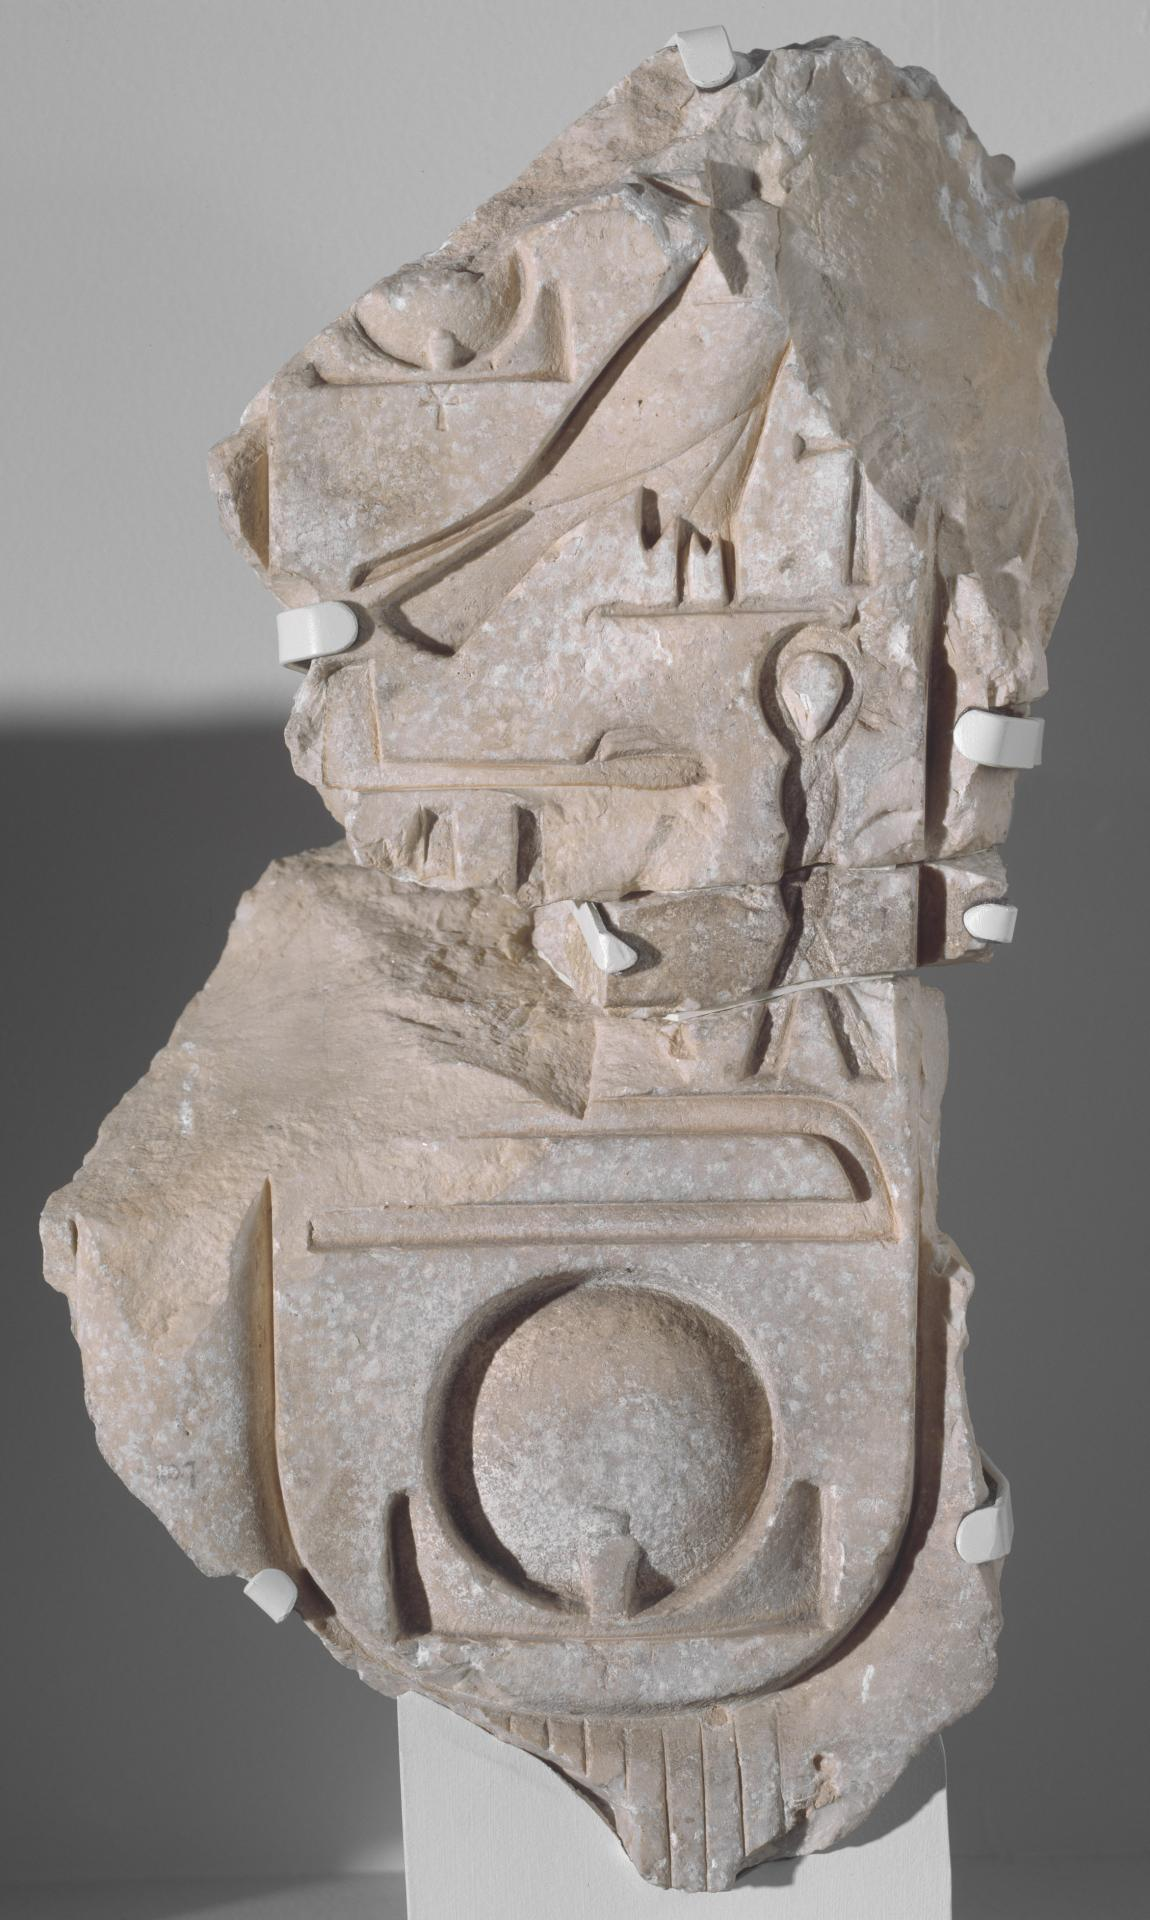 Cartouche fragment of the Aten name, from Boundary Stela S